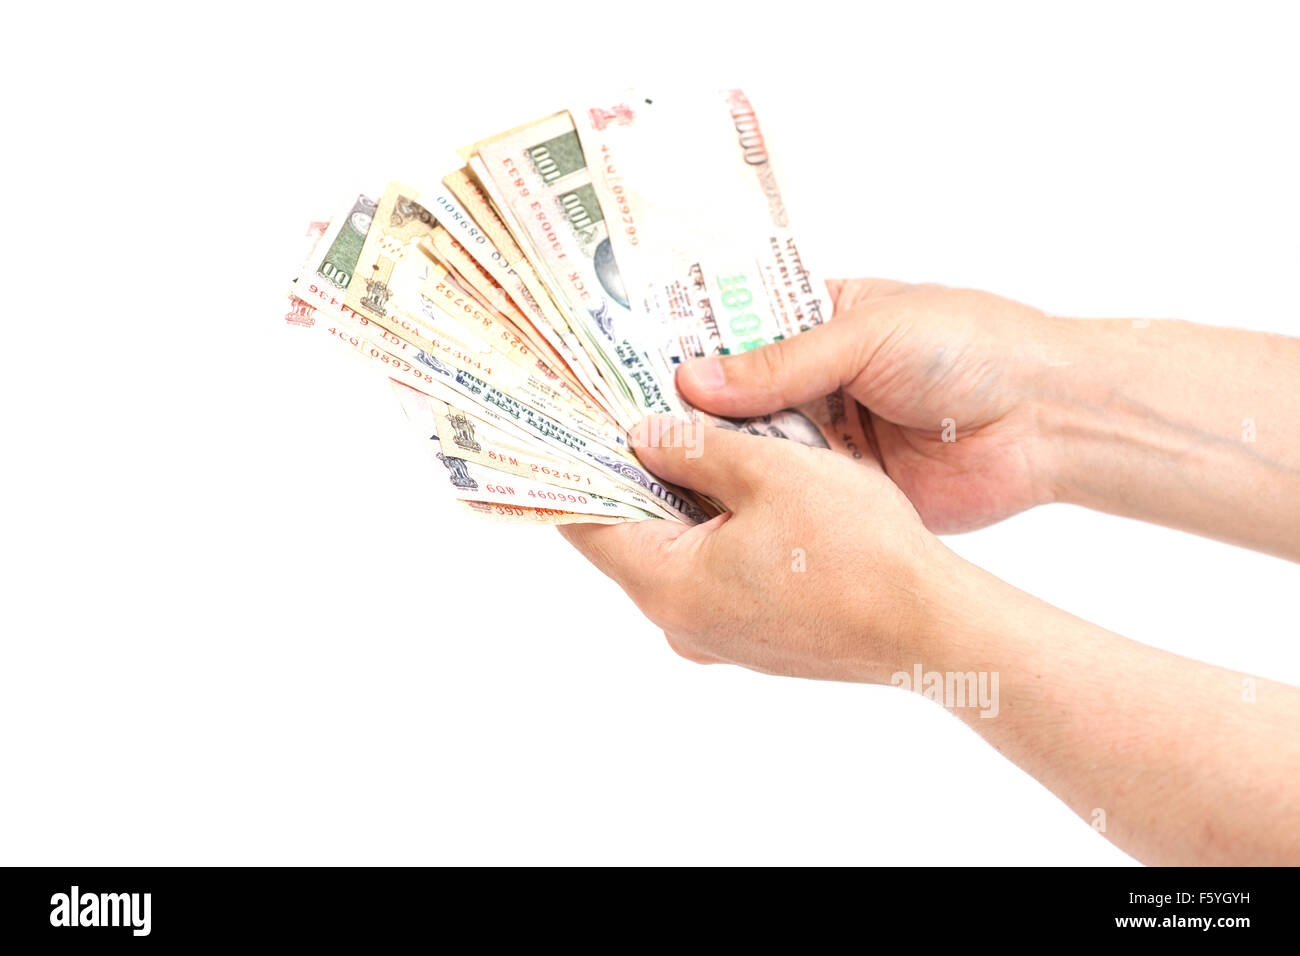 Hand with Indian rupee notes isolated - Stock Image